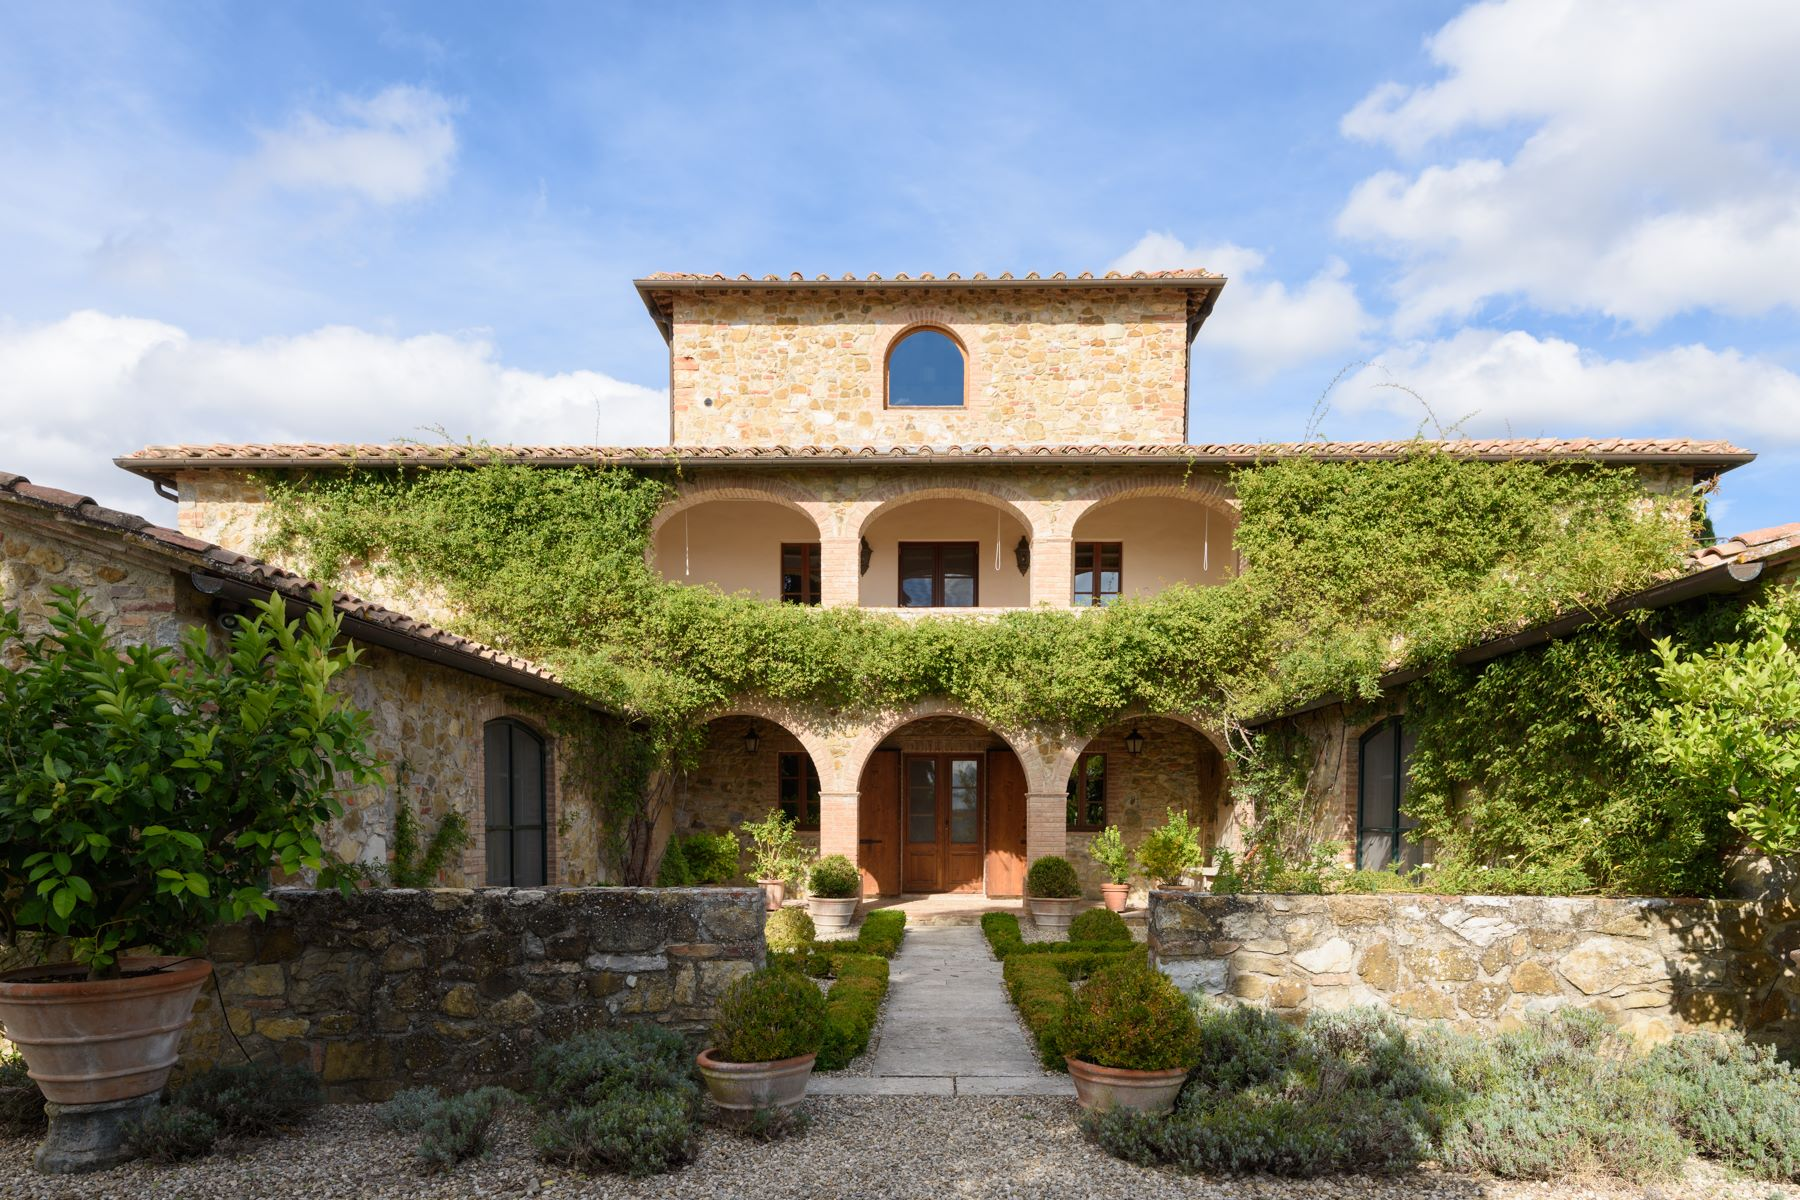 Single Family Home for Sale at Luxury Chianti country estate Castelnuovo Berardenga Siena, Siena, 53019 Italy